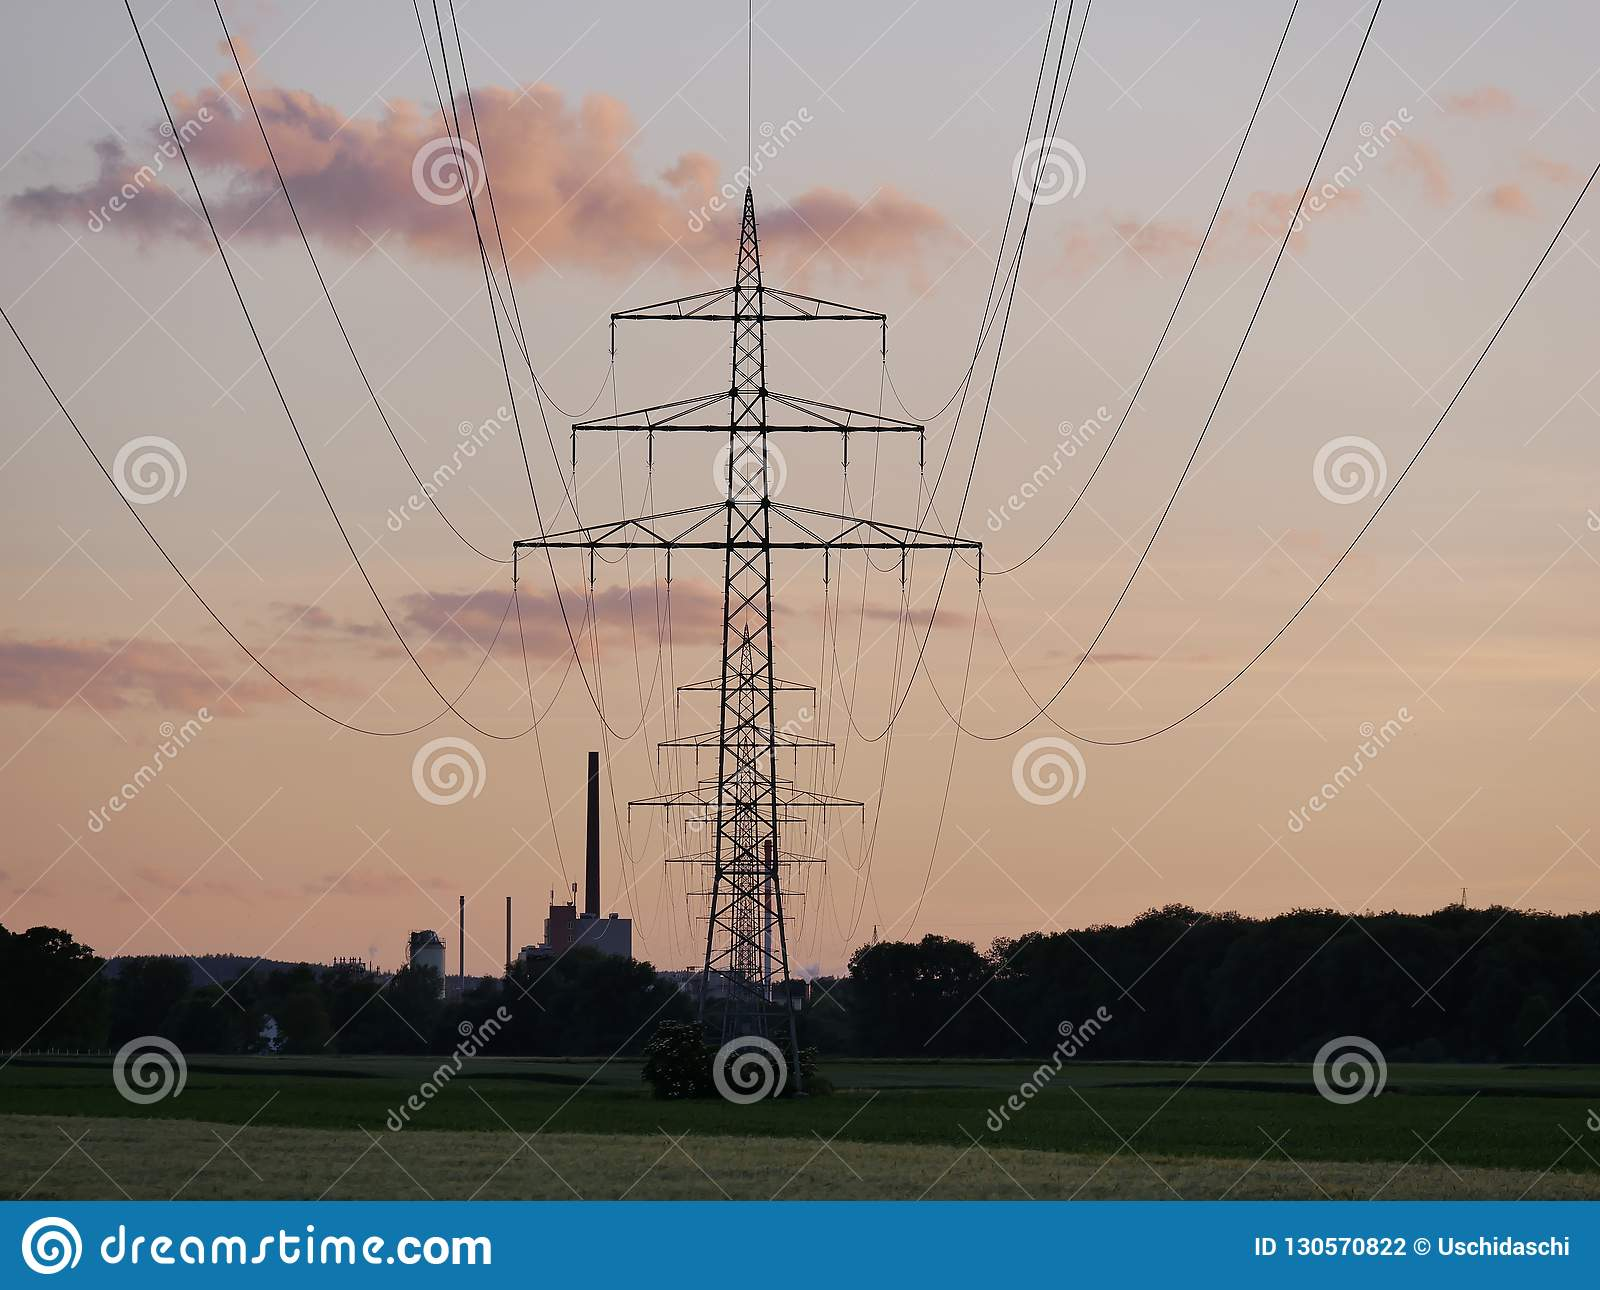 Image of power line during sunset with power plant